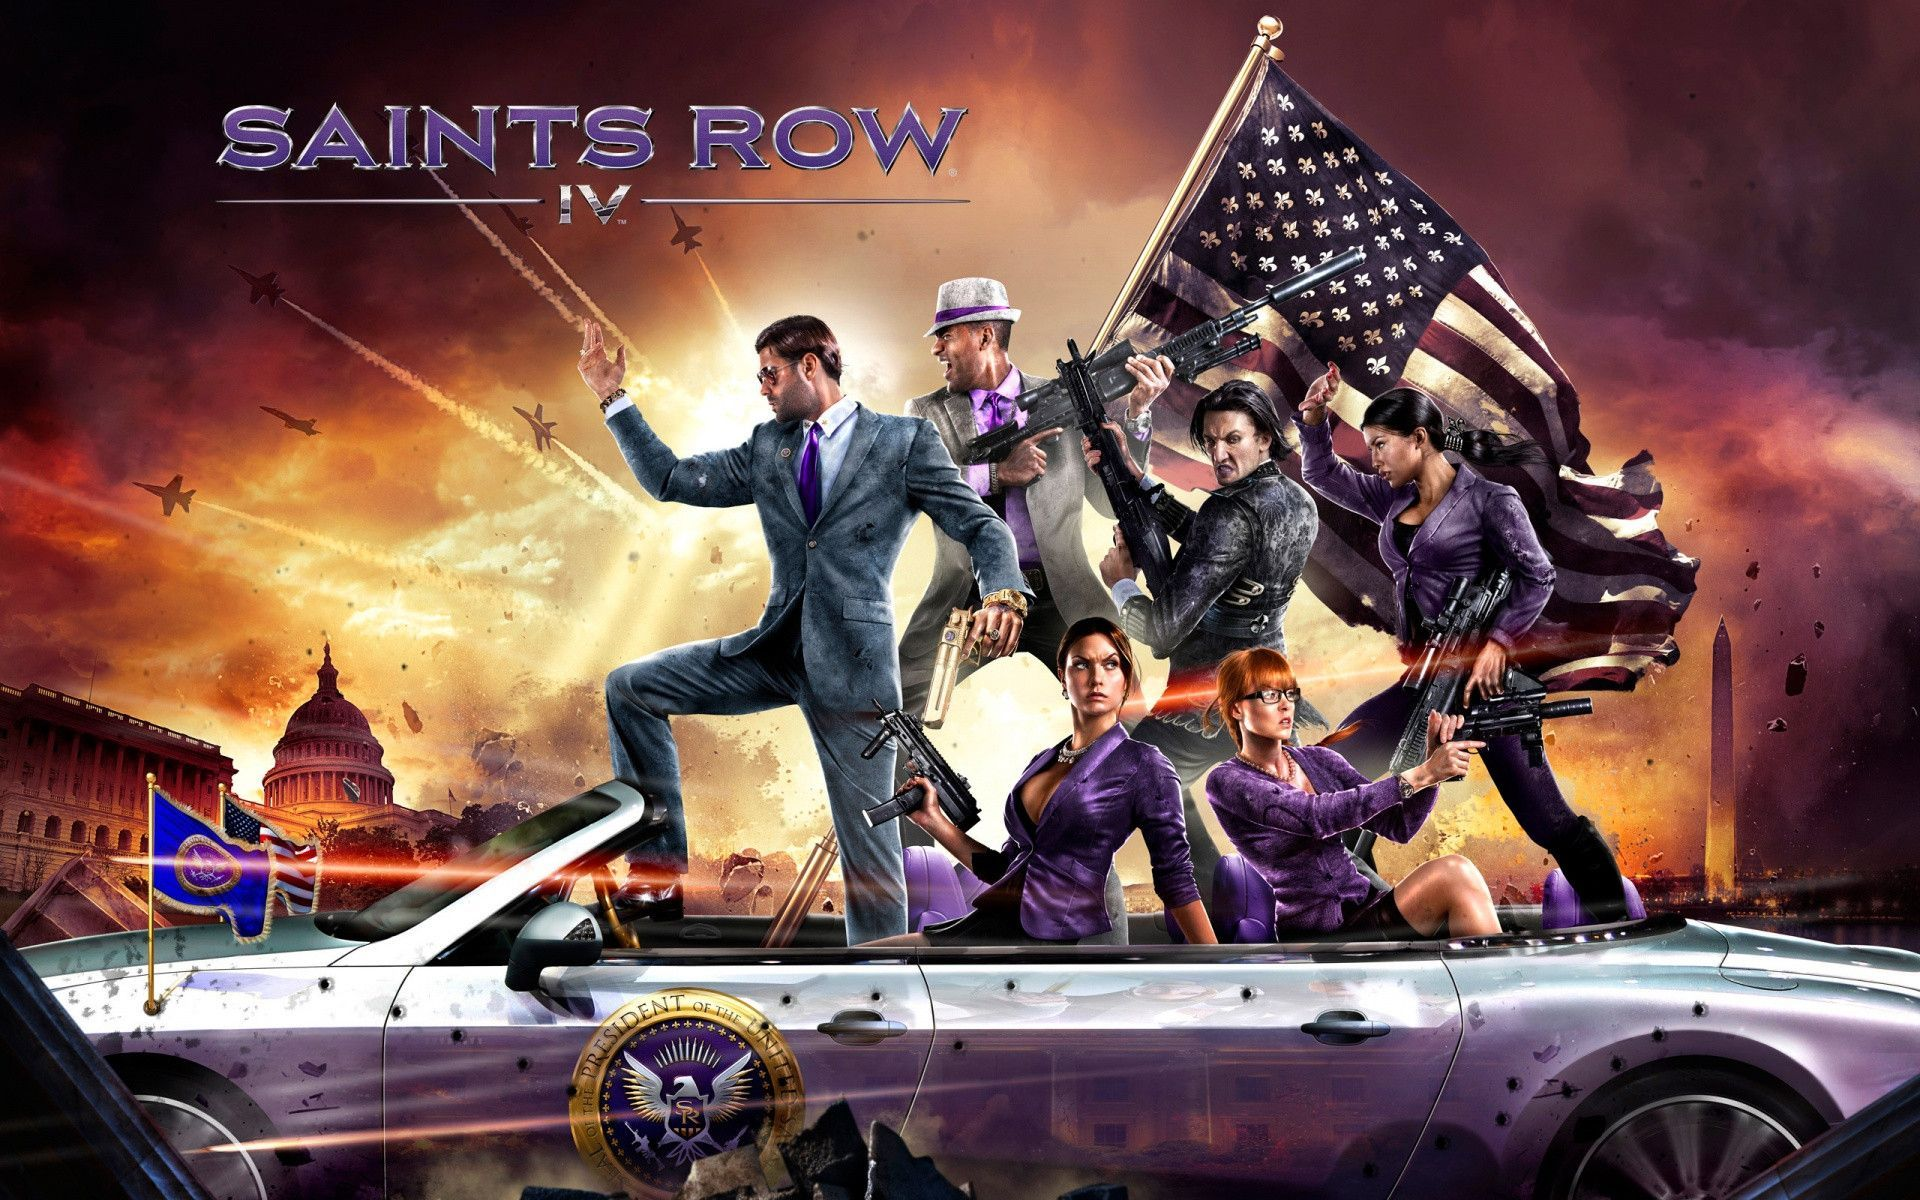 Saints row 4 clipart image royalty free Saints row clipart hd - ClipartFox image royalty free